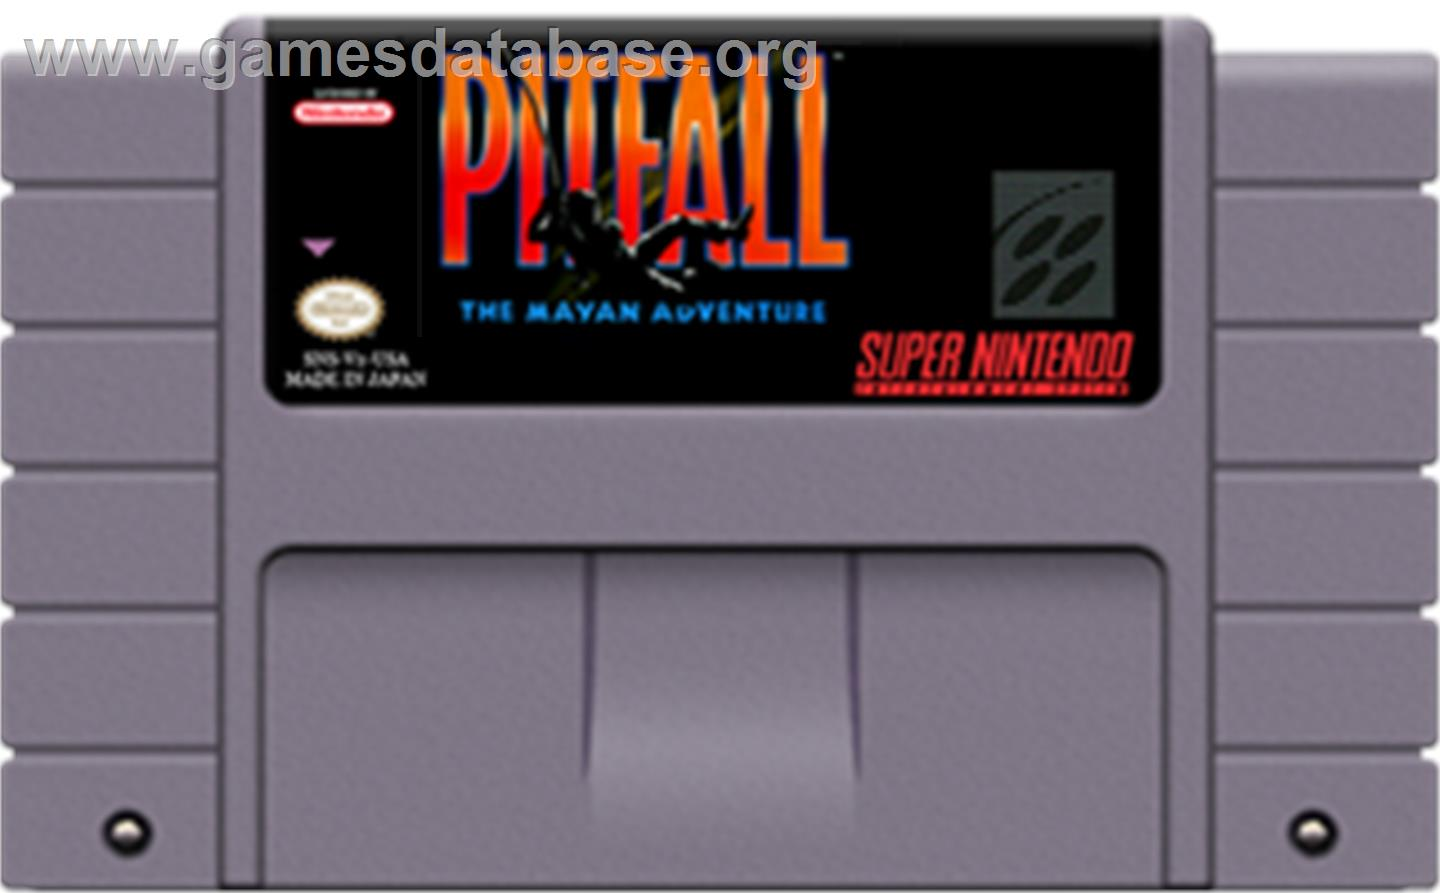 Pitfall: The Mayan Adventure - Nintendo SNES - Artwork - Cartridge